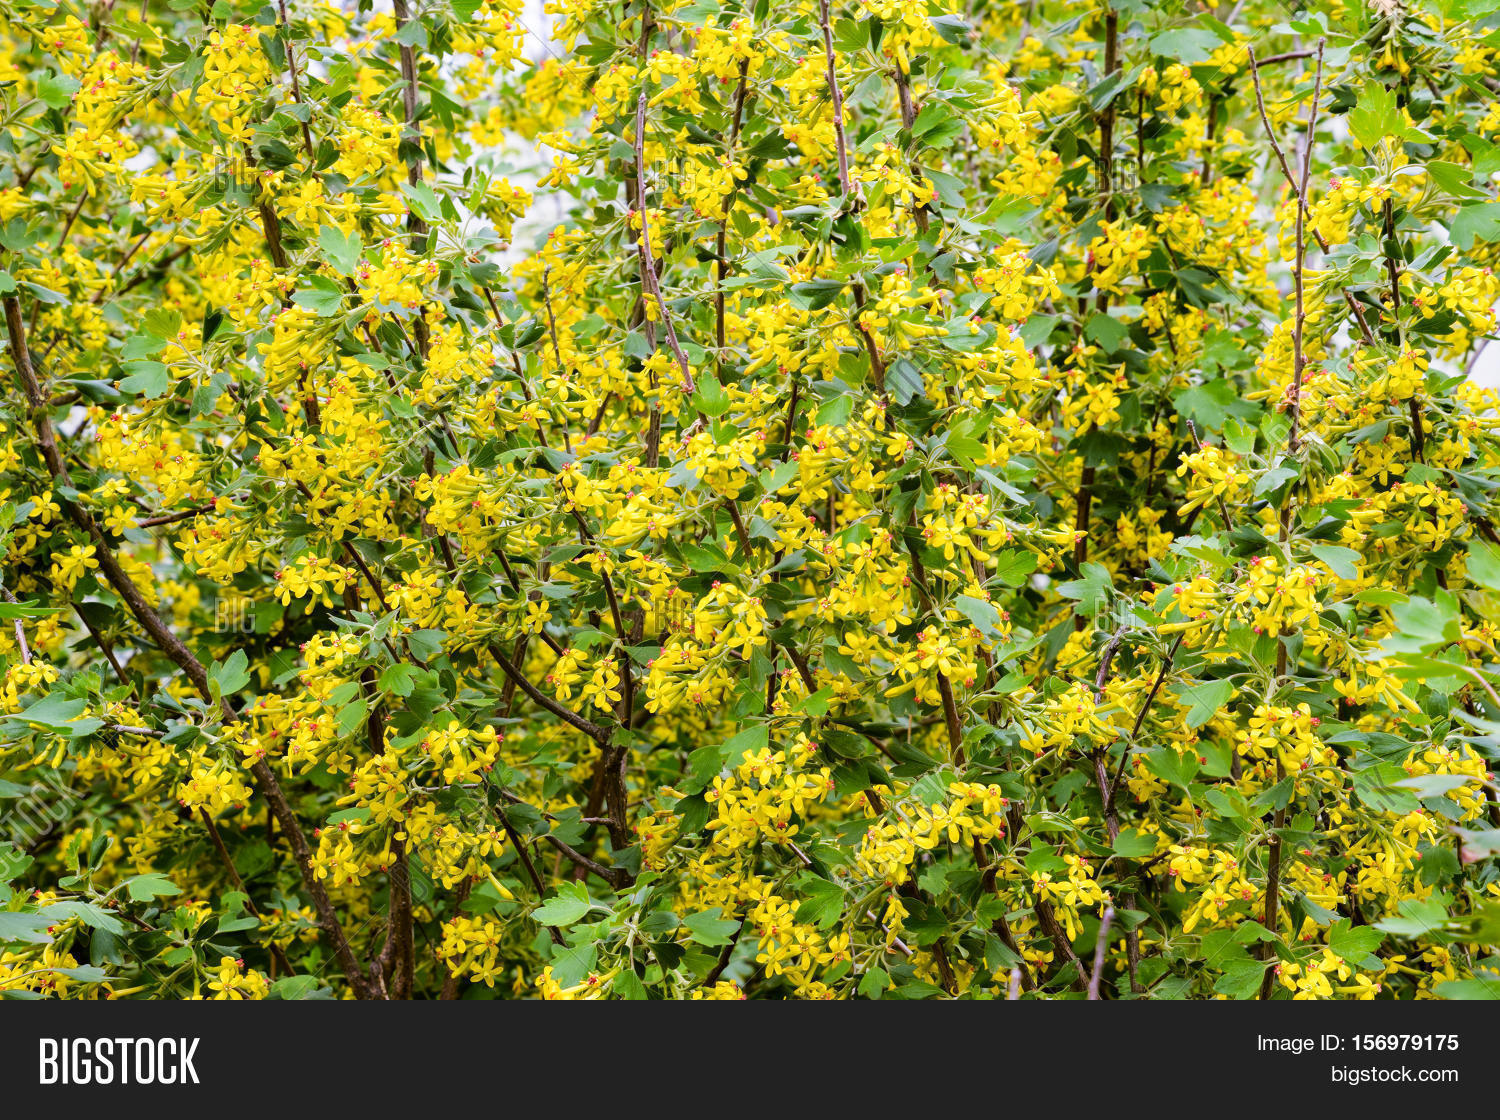 Golden Currant Blooms Image Photo Free Trial Bigstock